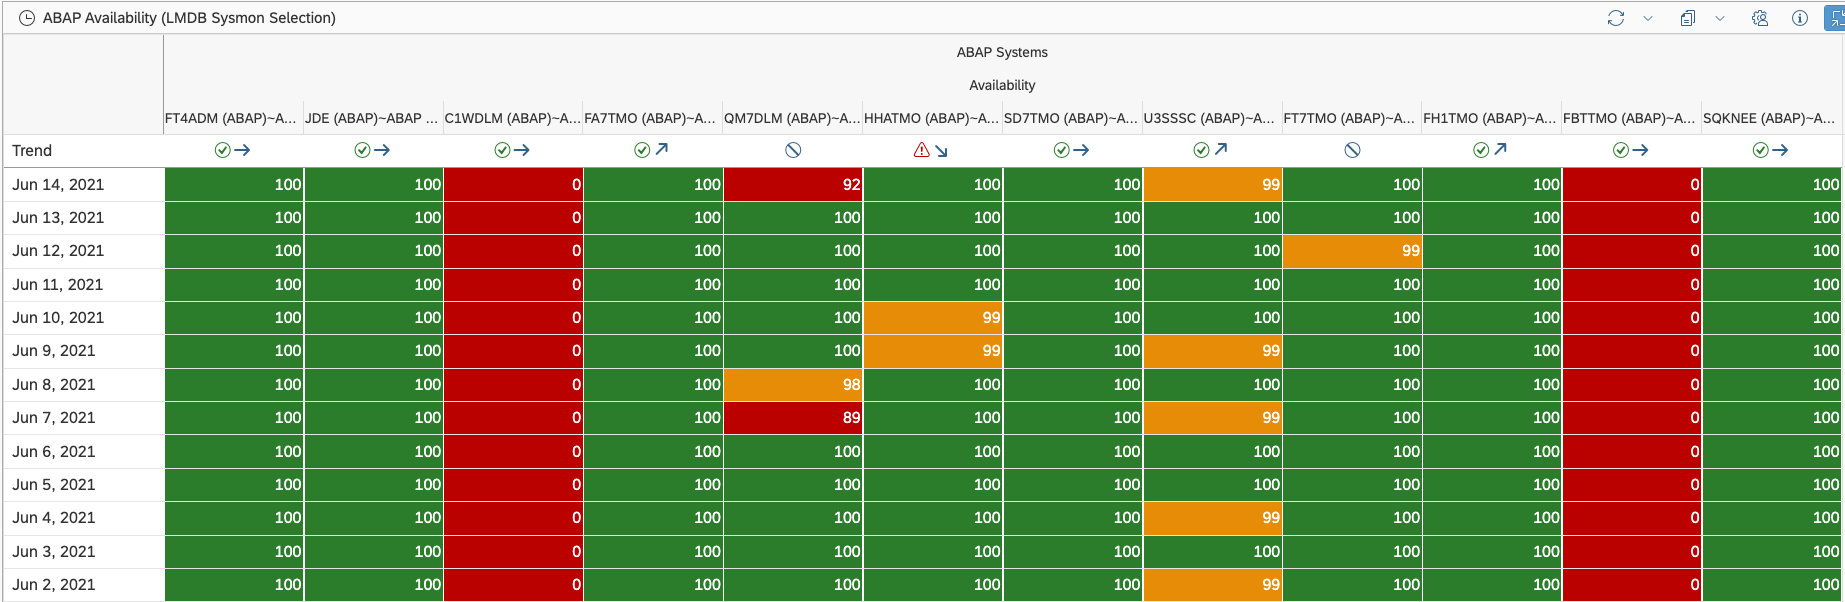 Availability%20for%20all%20ABAP%20Systems%20using%20History%20Table%20Renderer